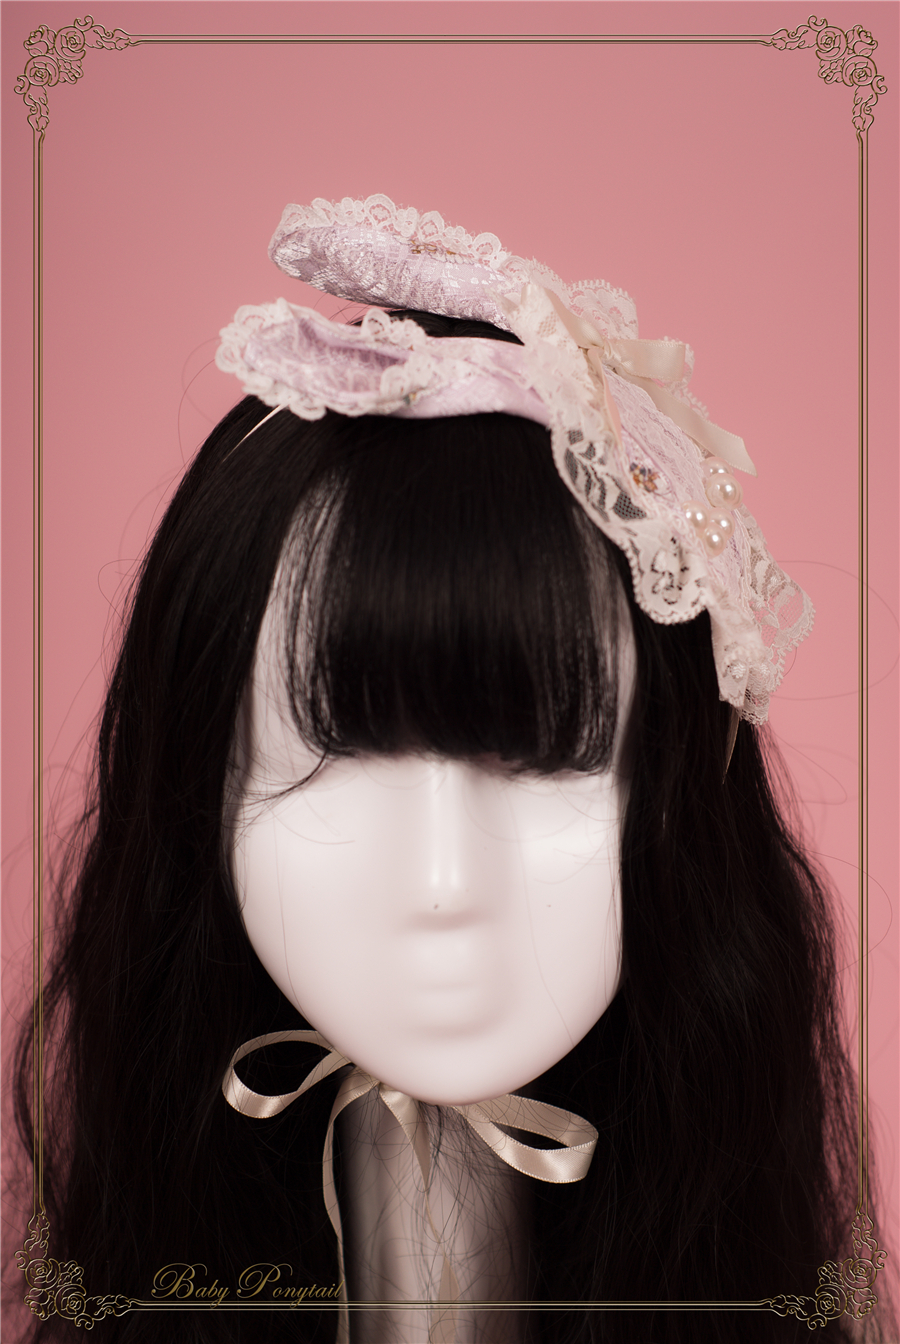 BabyPonytail_Stock Photo_My Favorite Companion_Bunny Head Dress_10.jpg